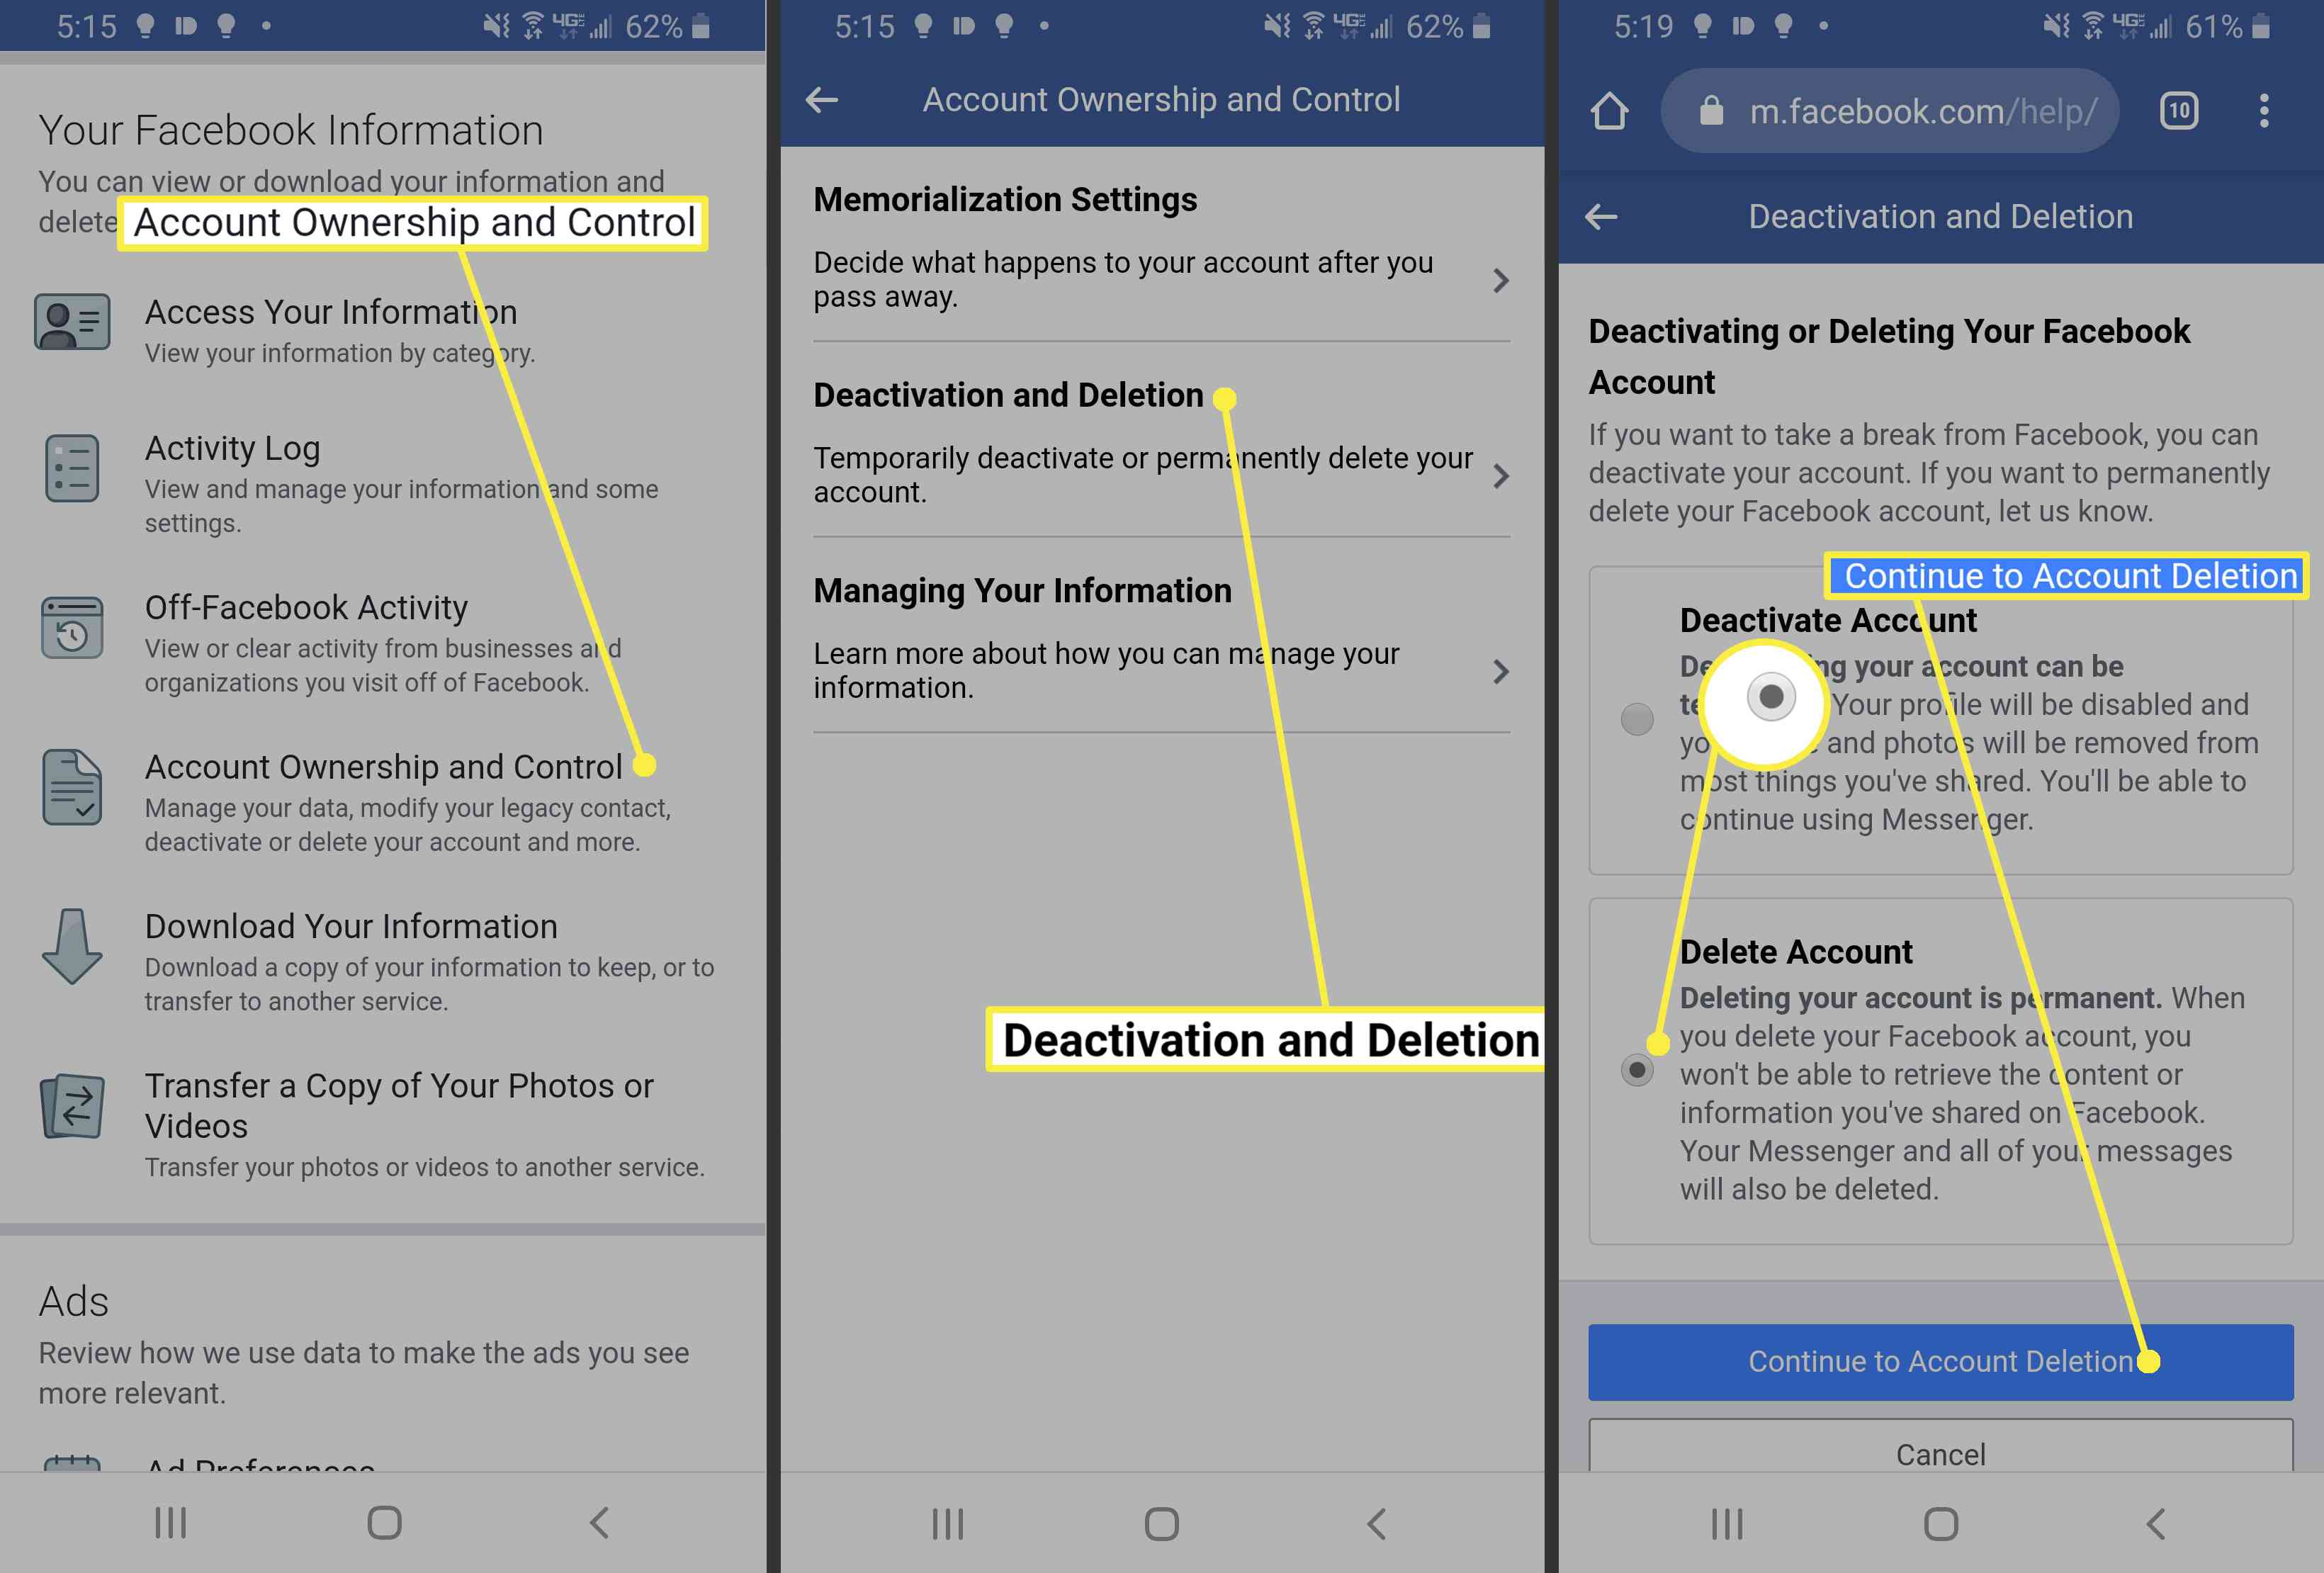 Deleting Facebook in a mobile browser on Android.